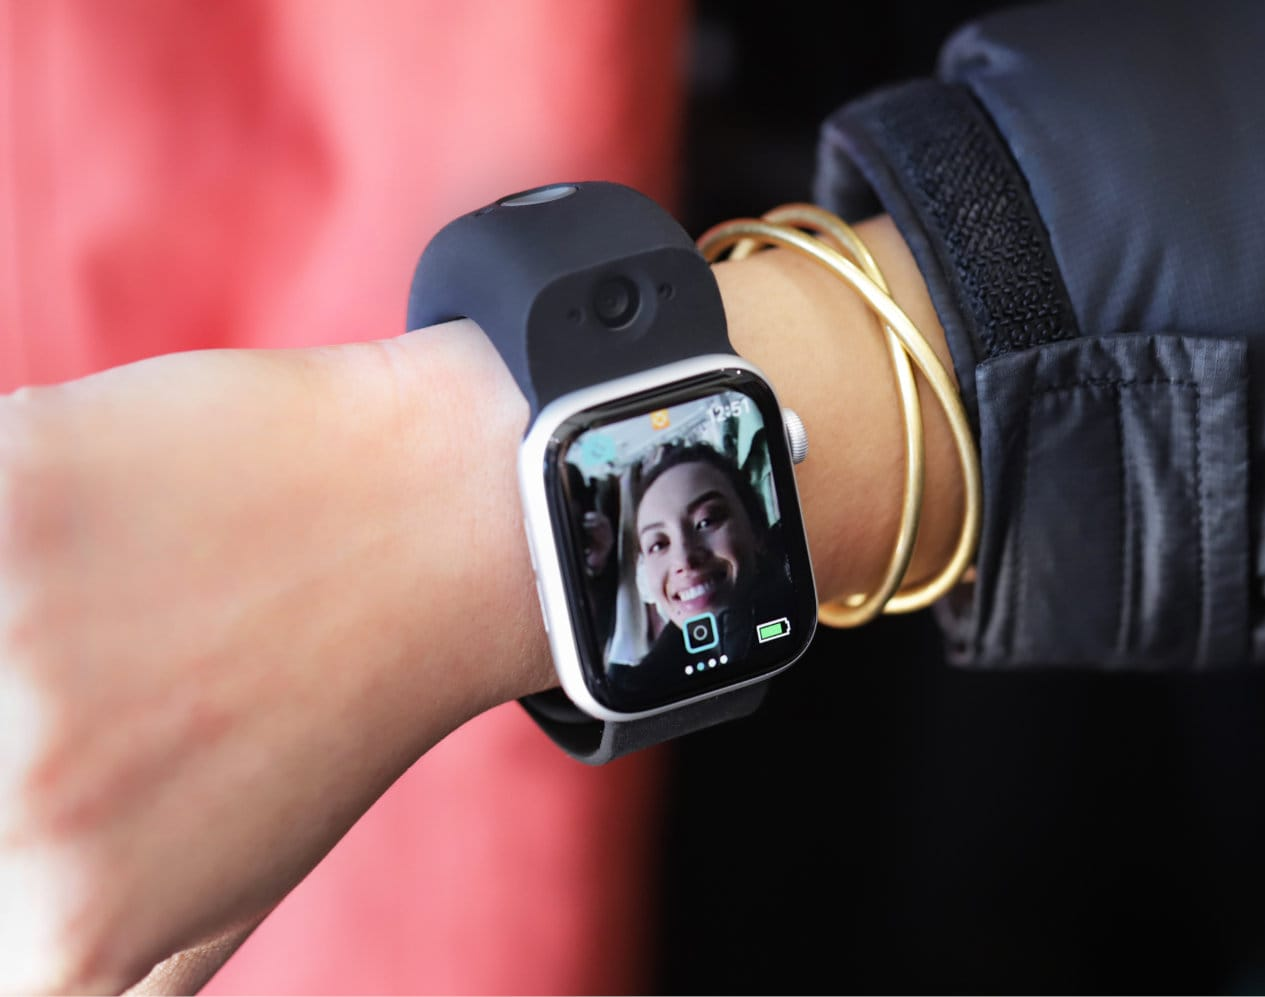 Wristcam gives your Apple Watch dual cameras and live video messaging.